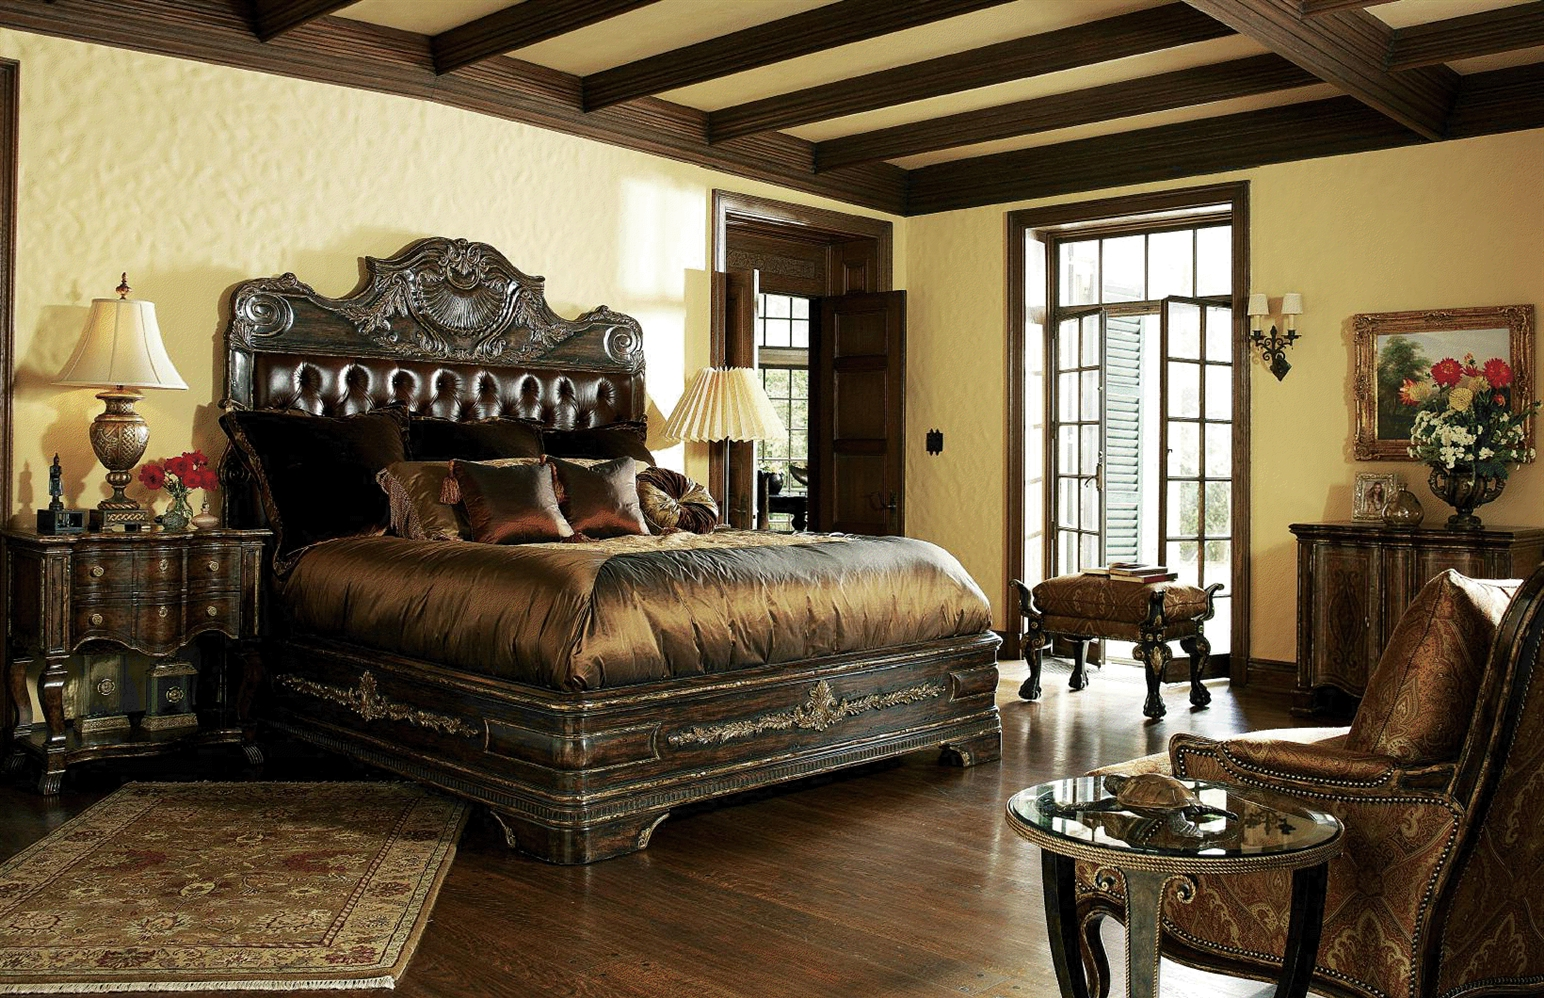 Master Bedroom Furniture >> 1 High End Master Bedroom Set Carvings And Tufted Leather Headboard